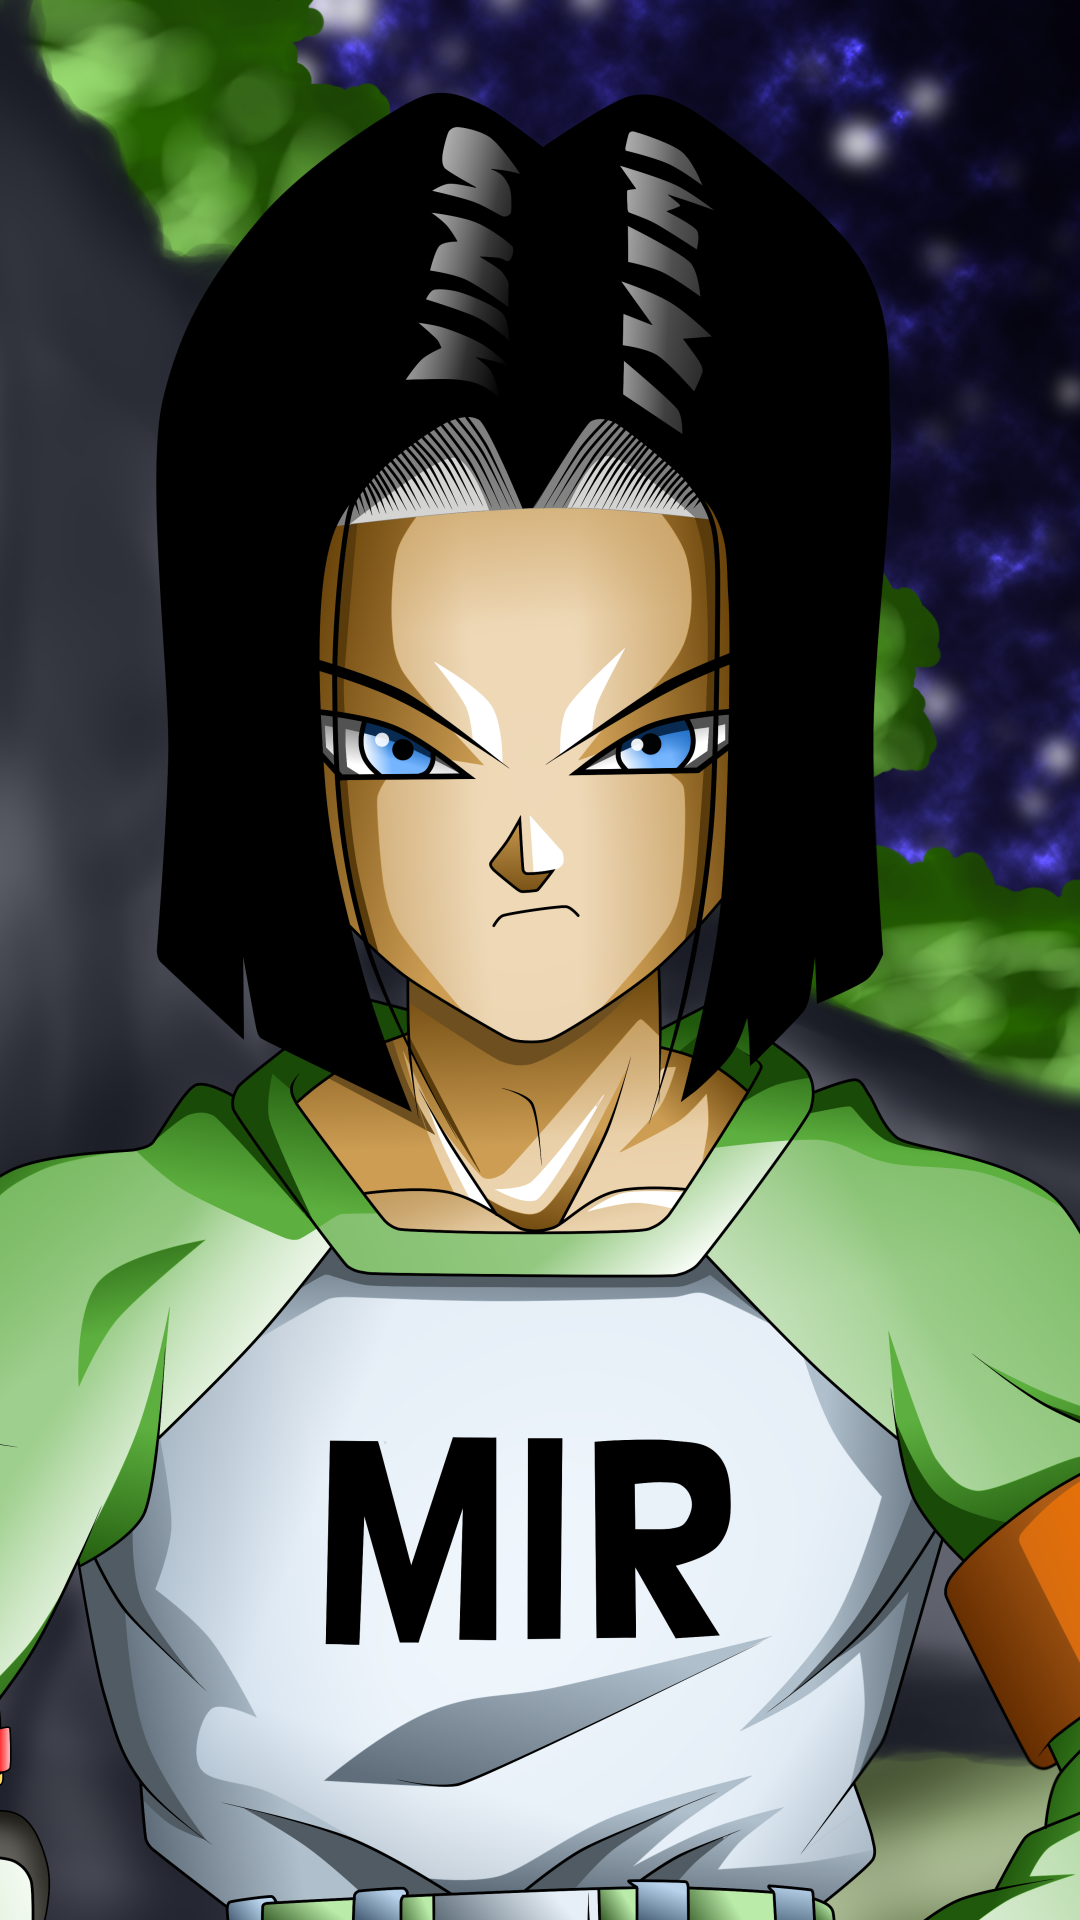 Download This Wallpaper Anime Dragon Ball Super 1080x1920 For